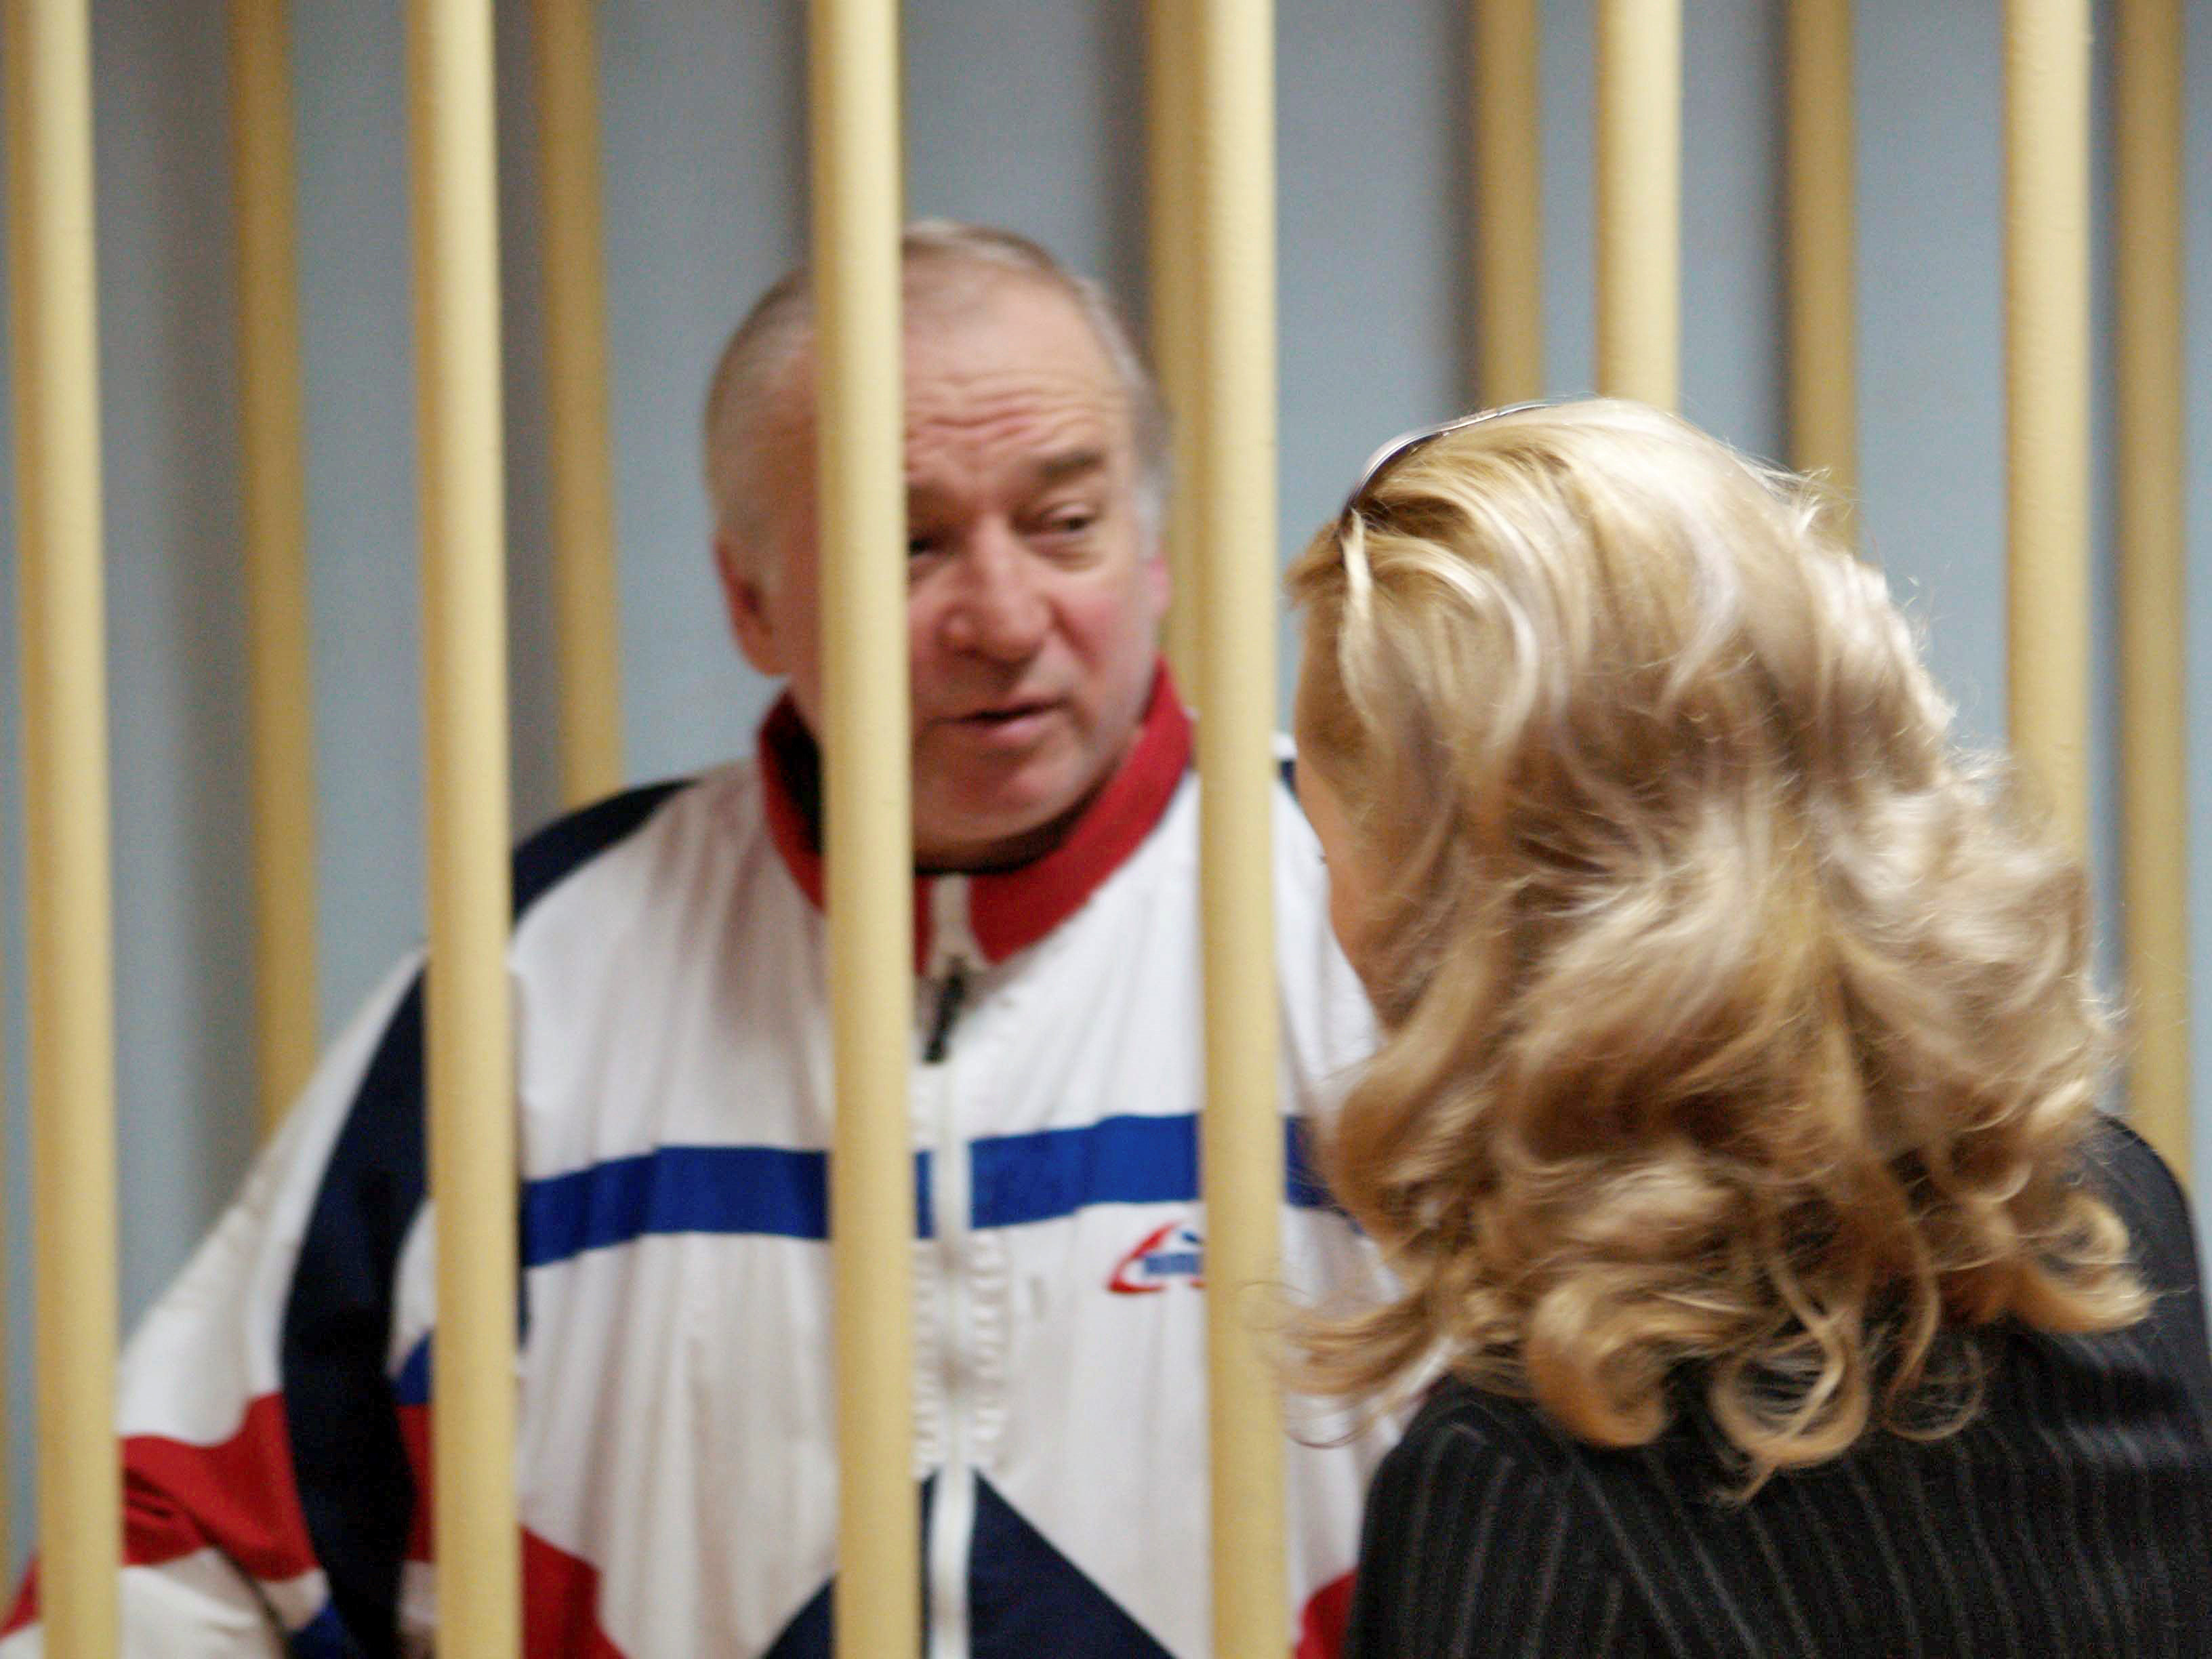 ILE PHOTO: Sergei Skripal, a former colonel of Russia's GRU military intelligence service, looks on inside the defendants' cage as he attends a hearing at the Moscow military district court, Russia August 9, 2006. Kommersant/Yuri Sen